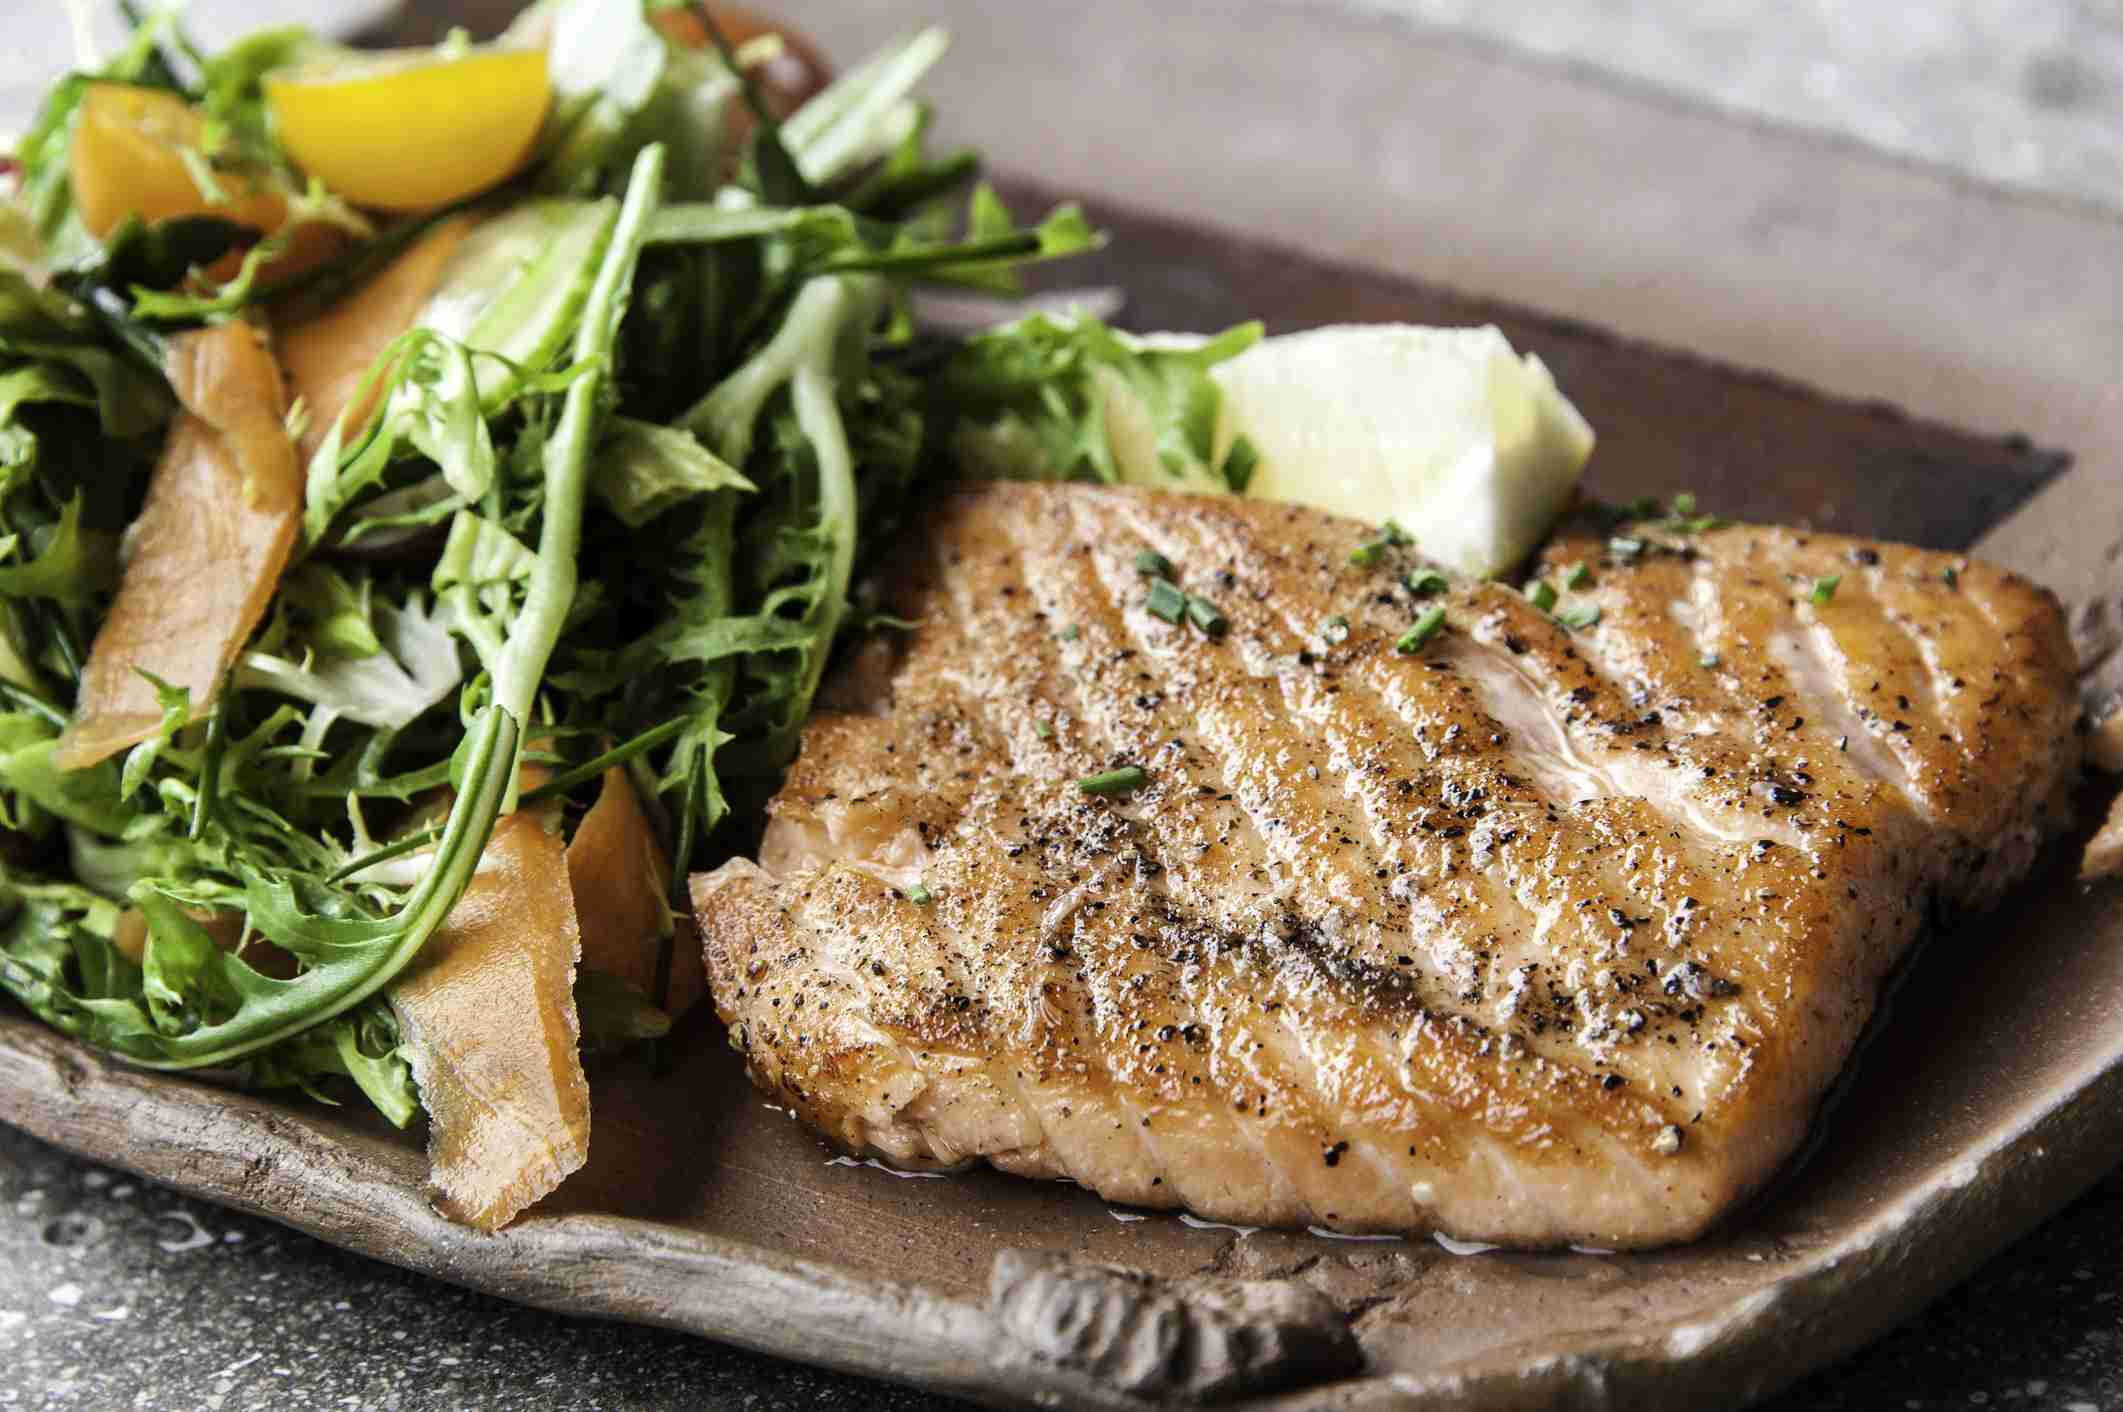 Grilled salmon and side salad